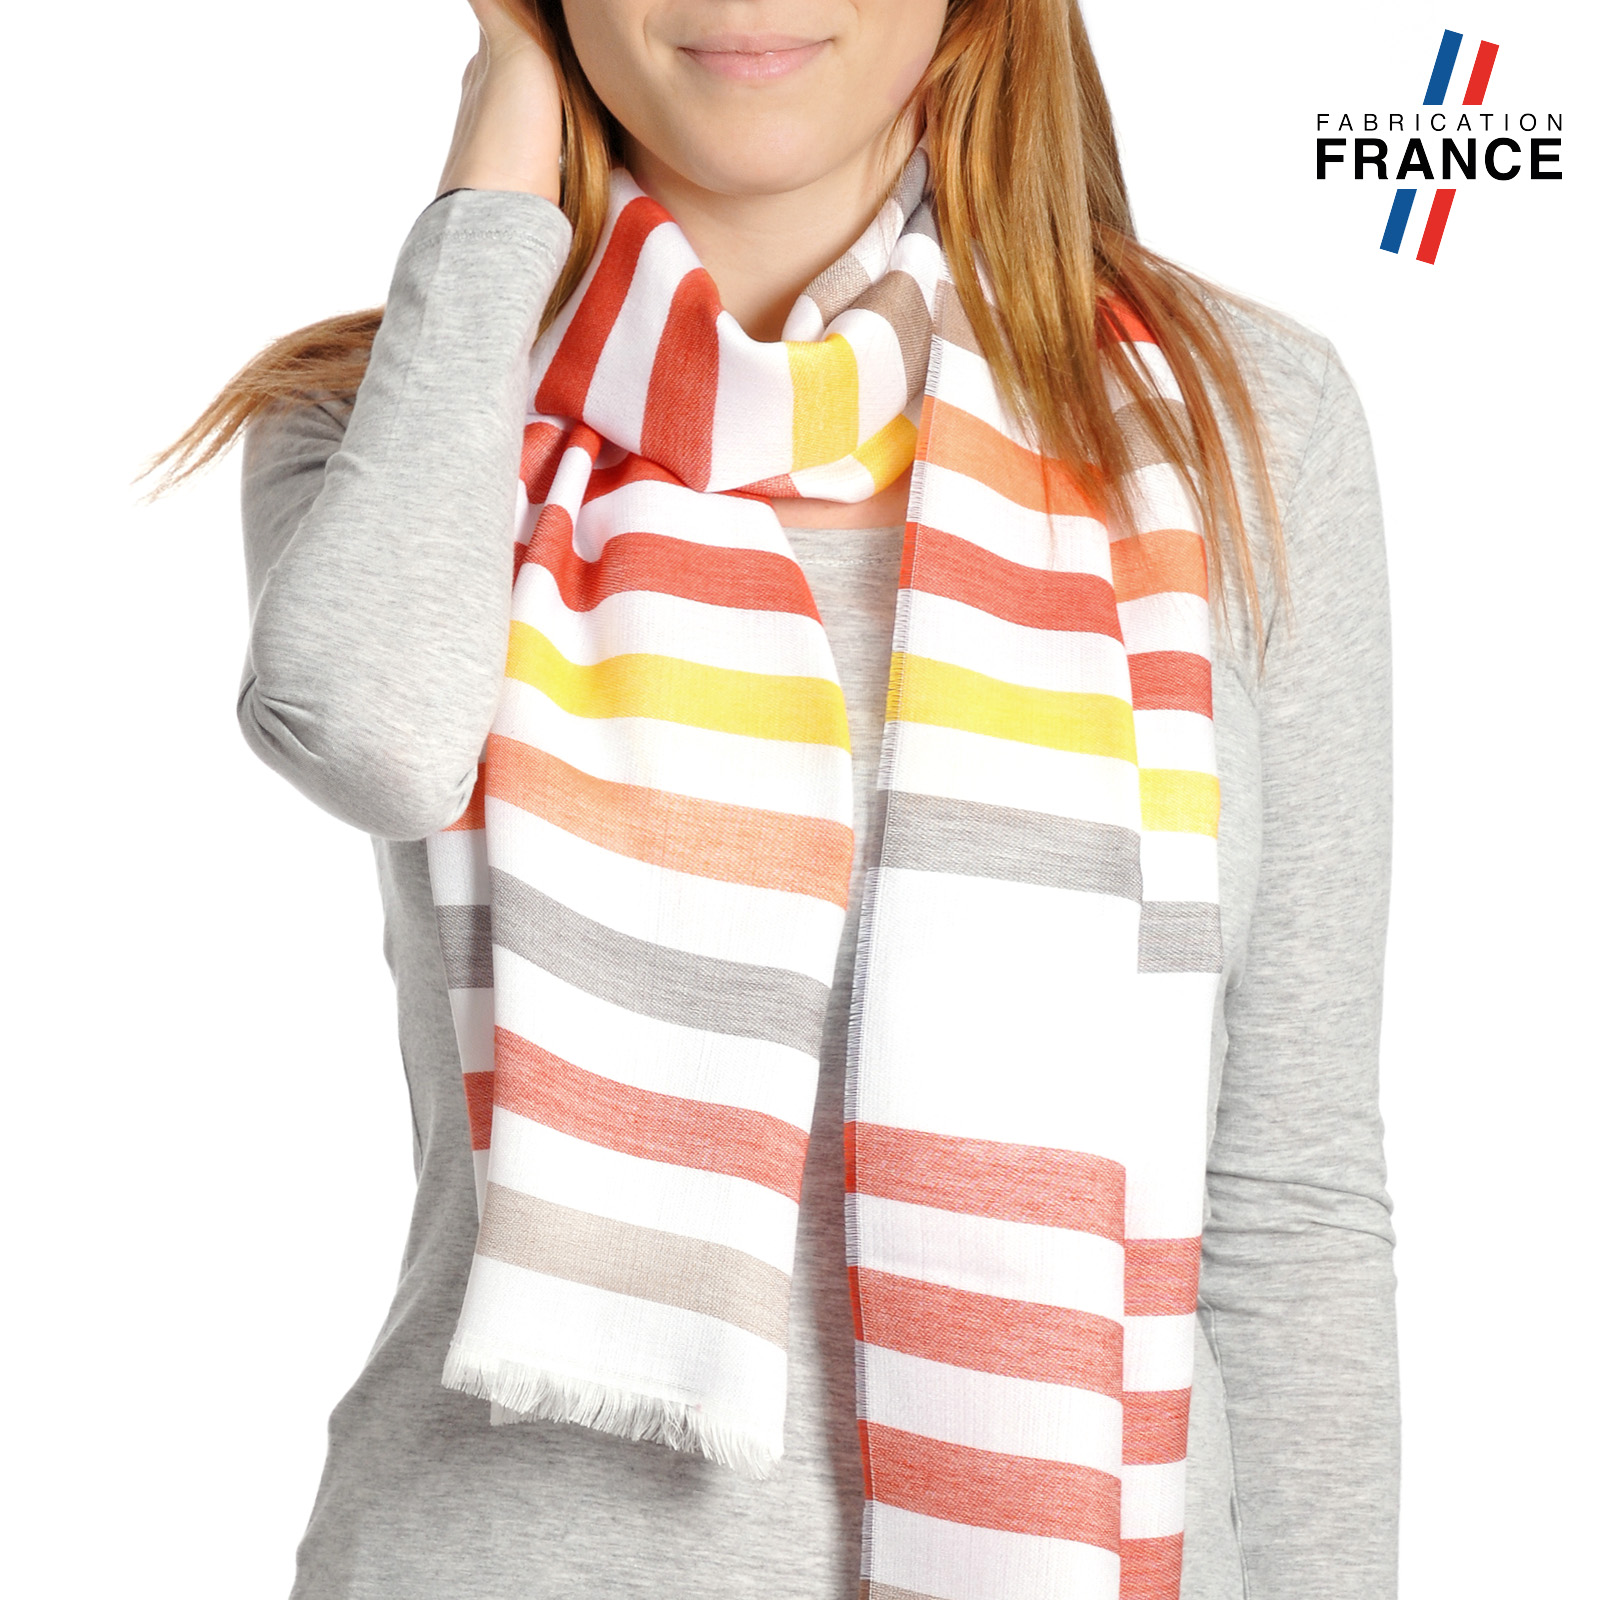 AT-04295-VF16-T-LB_FR-echarpe-legere-mi-saison-jaune-orange